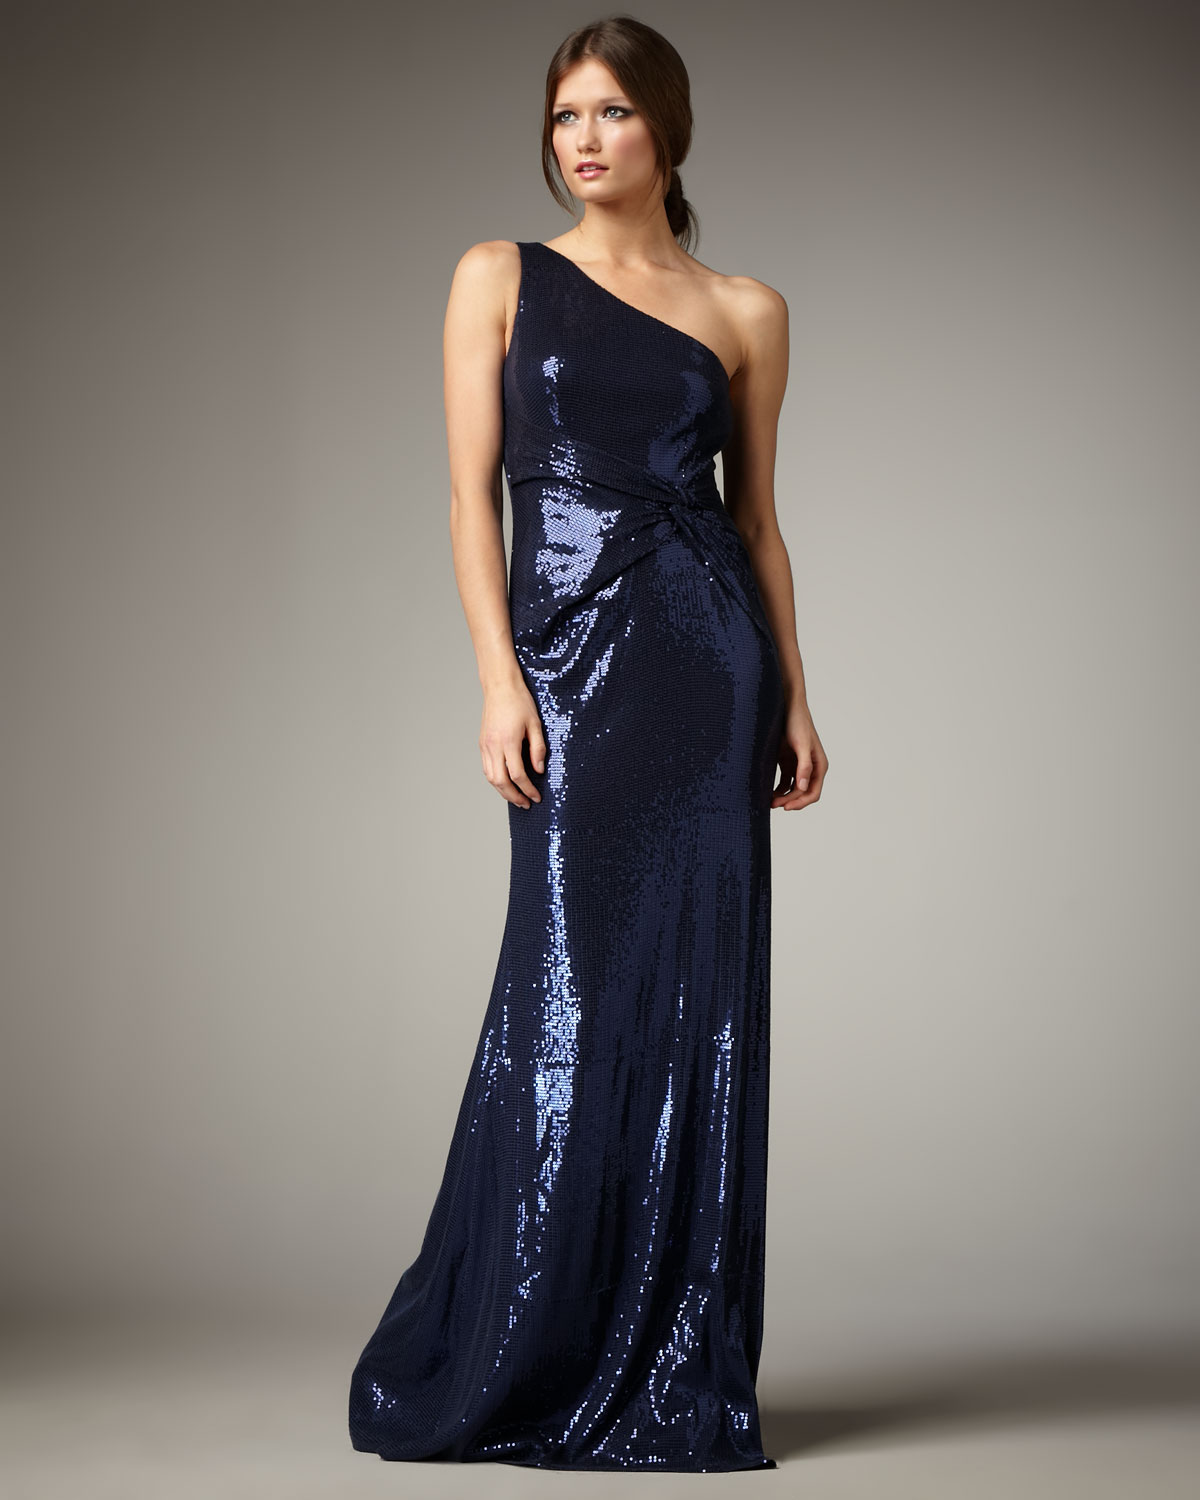 Lyst - David Meister One-Shoulder Sequin Gown in Blue